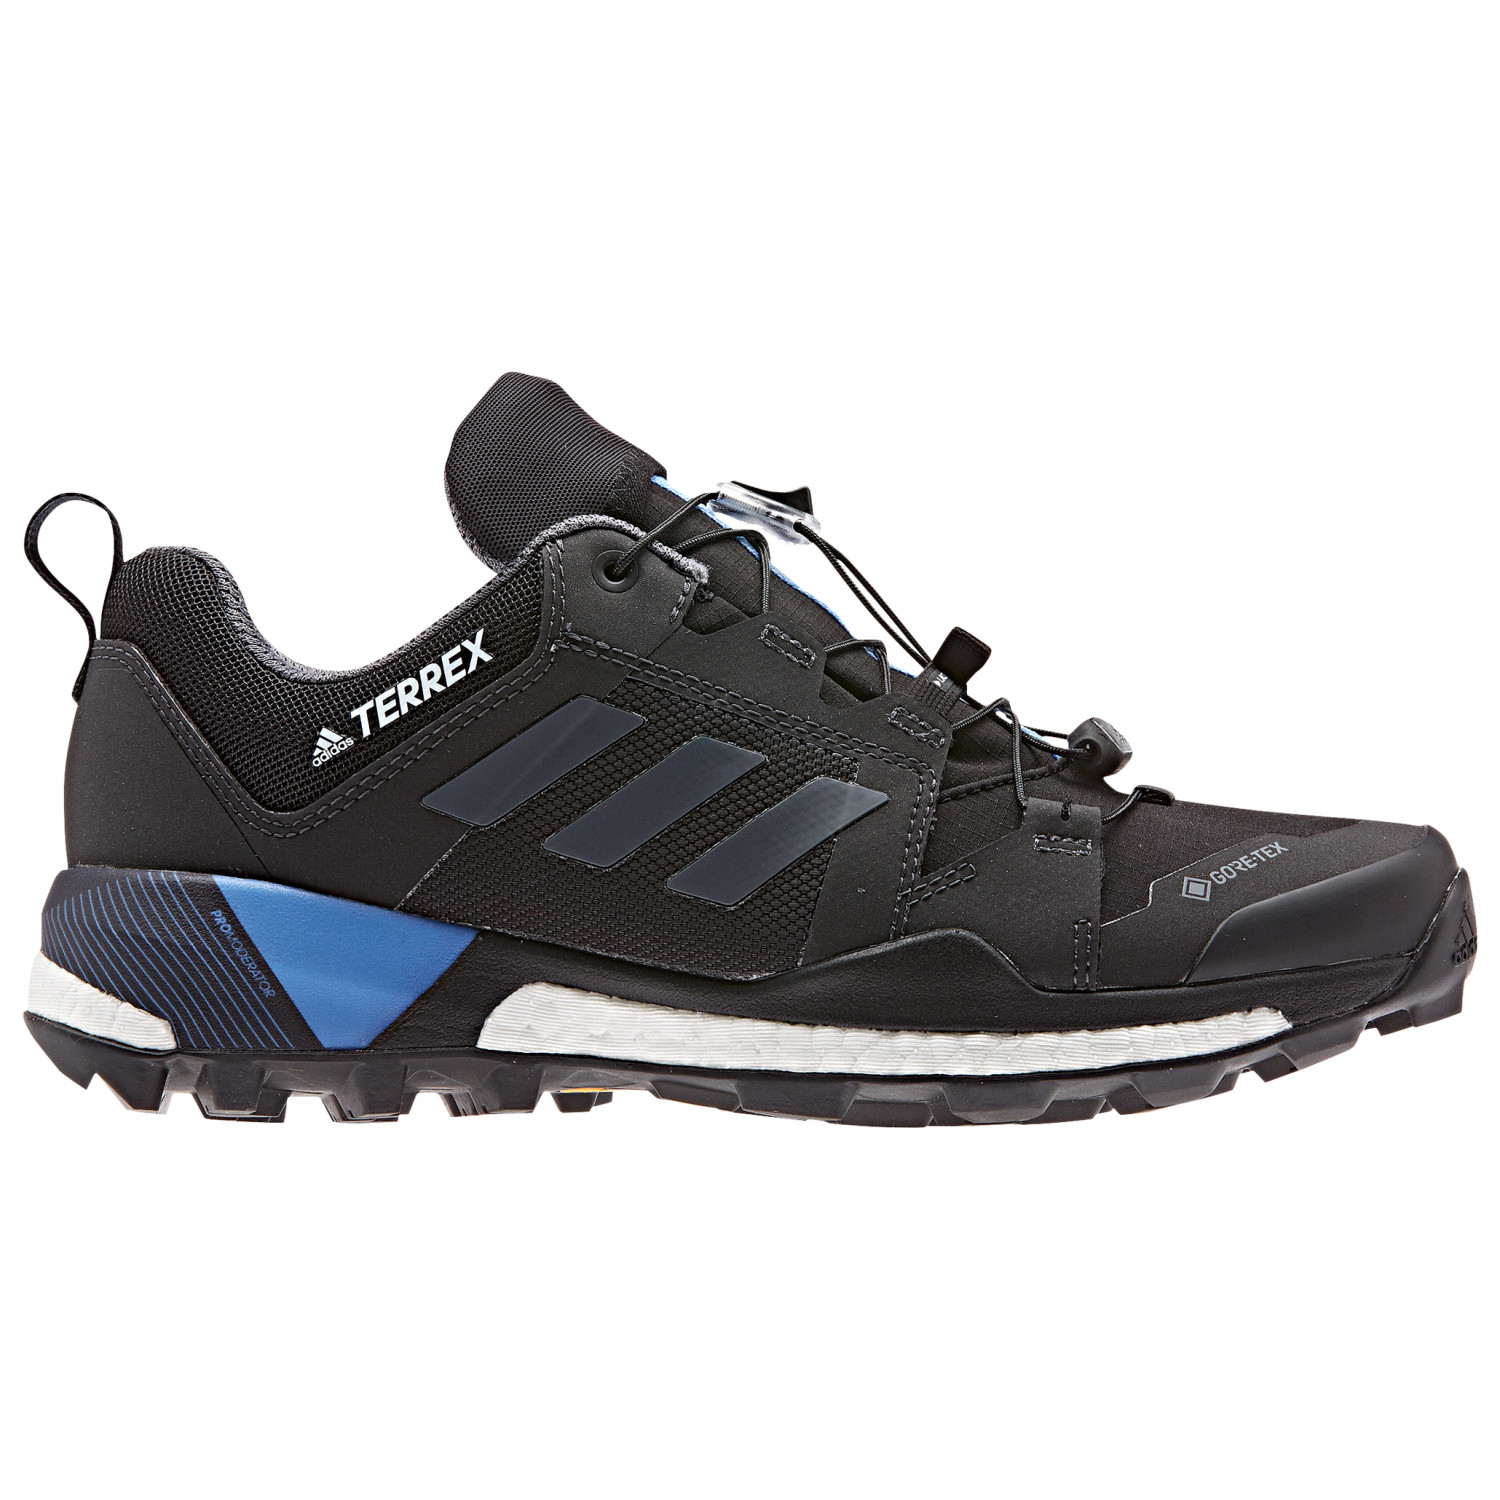 adidas - Women's Terrex Skychaser XT GTX - Approachschuhe - Core Black /  Grey Four / Real Blue | 3,5 (UK)